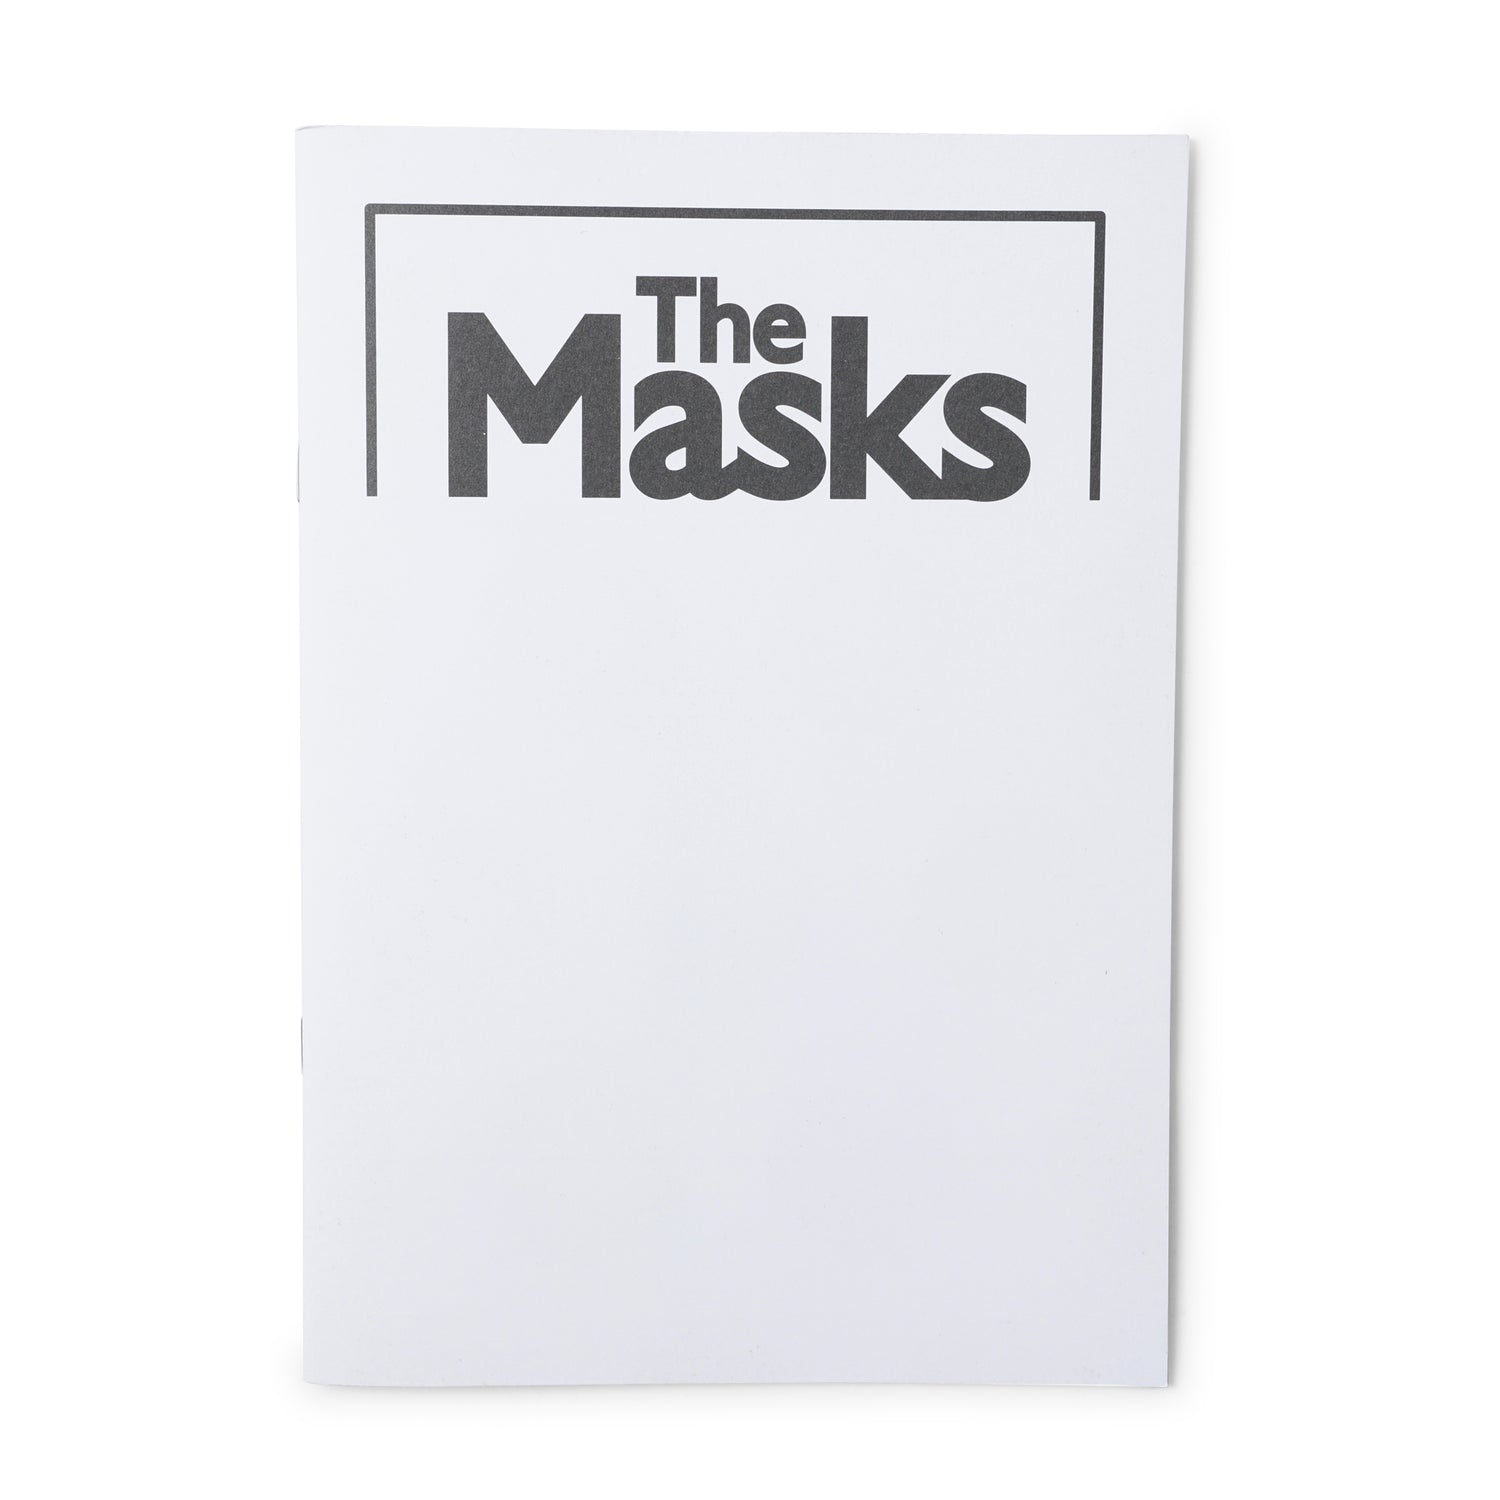 'The Masks' Zine